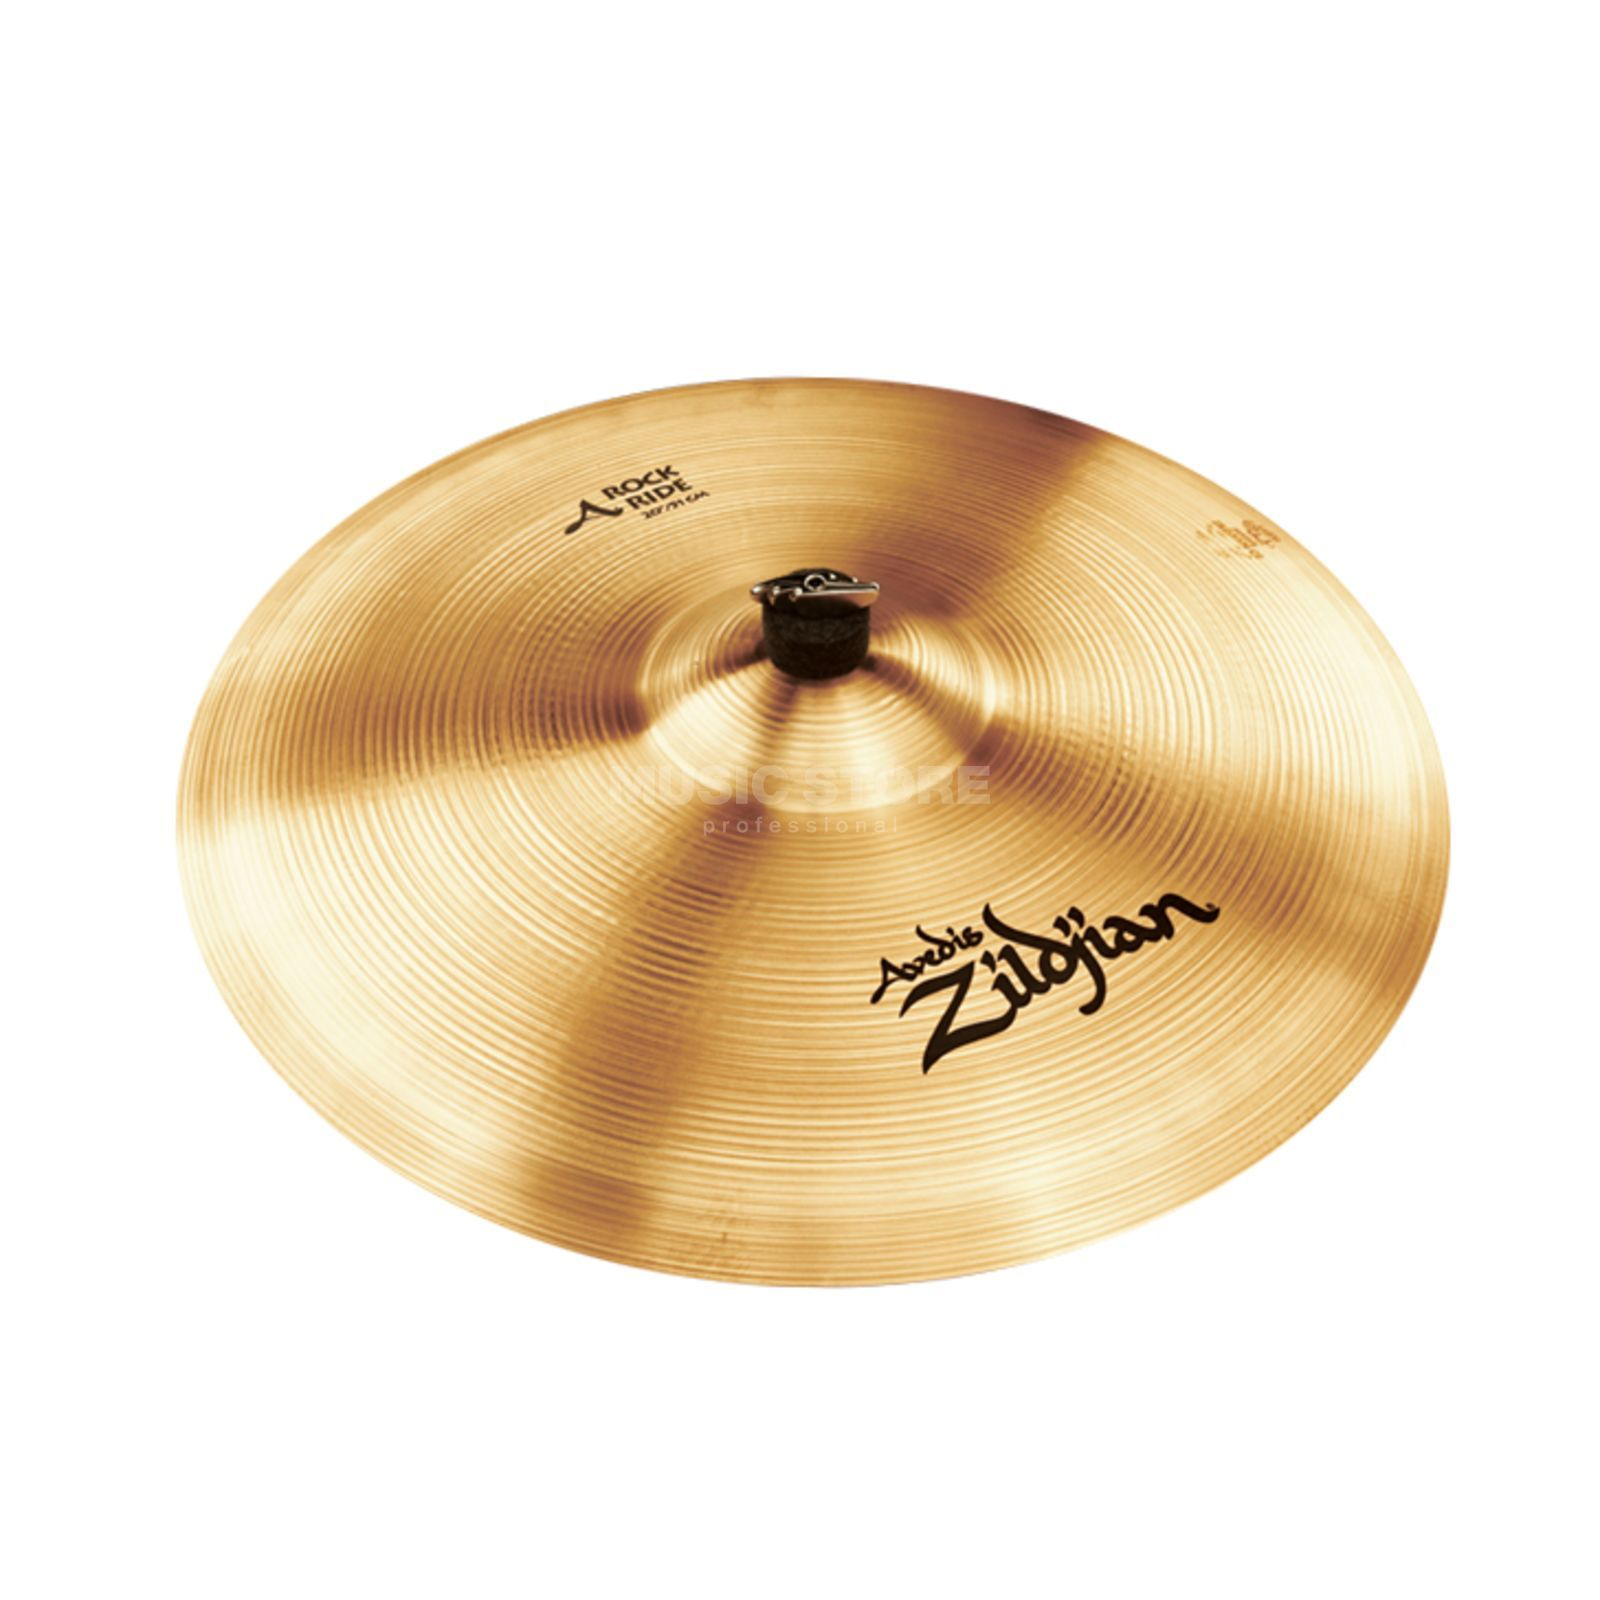 "Zildjian A' Zildjian Rock Ride 20"",Traditional Finish Image du produit"